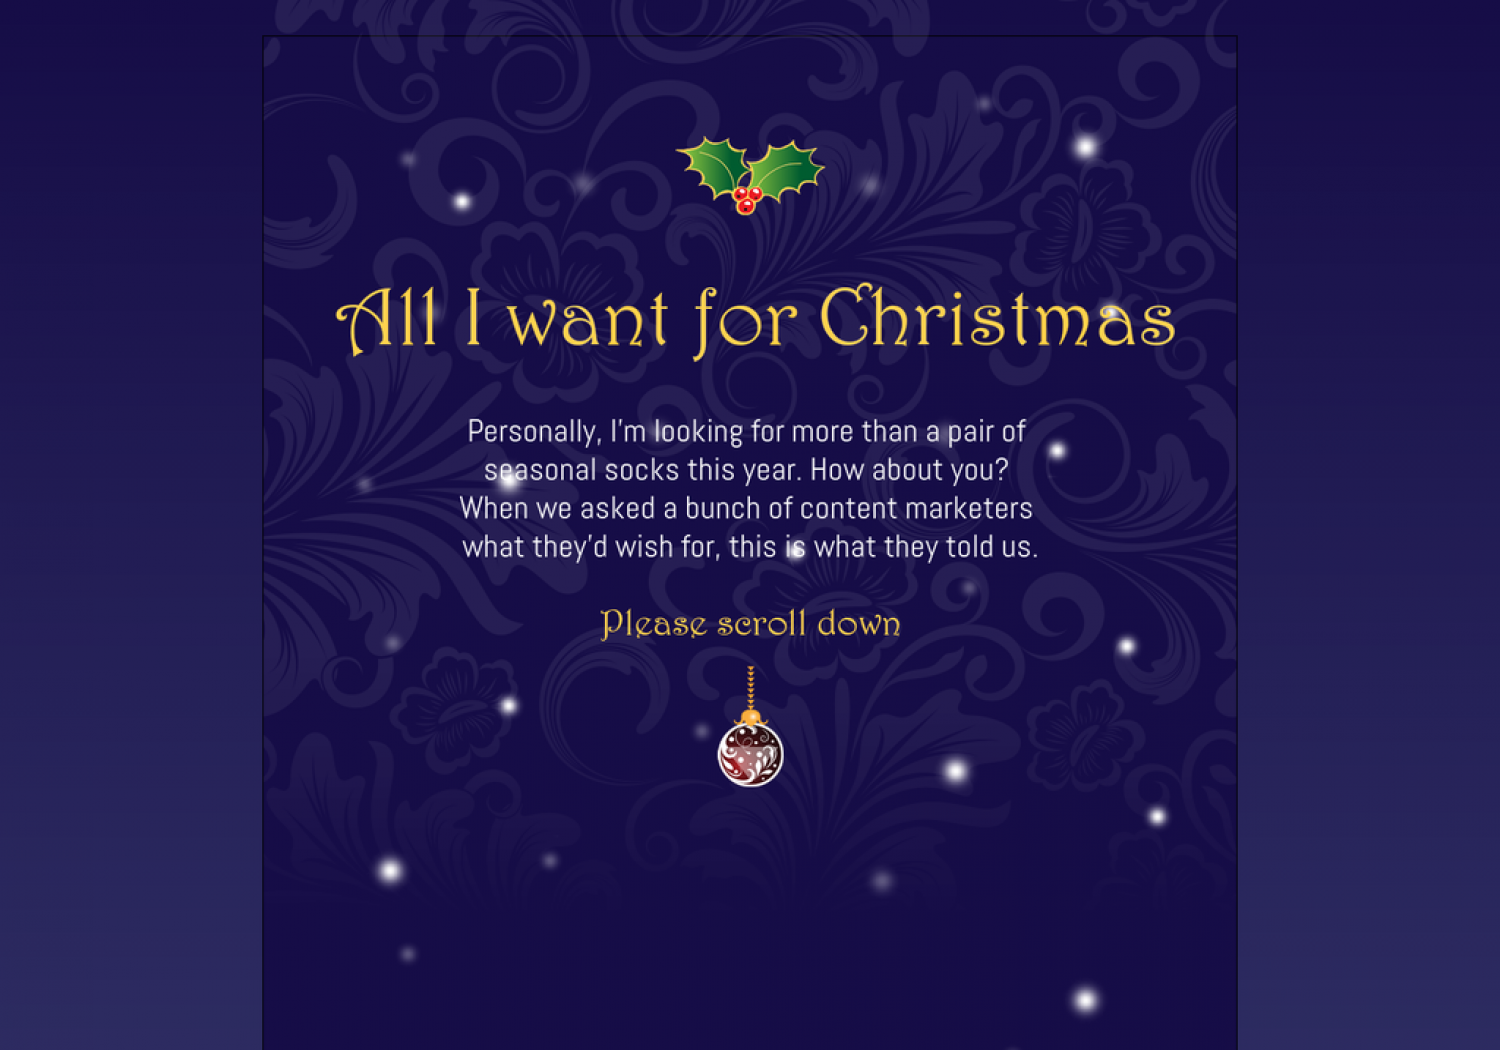 All I want for Christmas Infographic